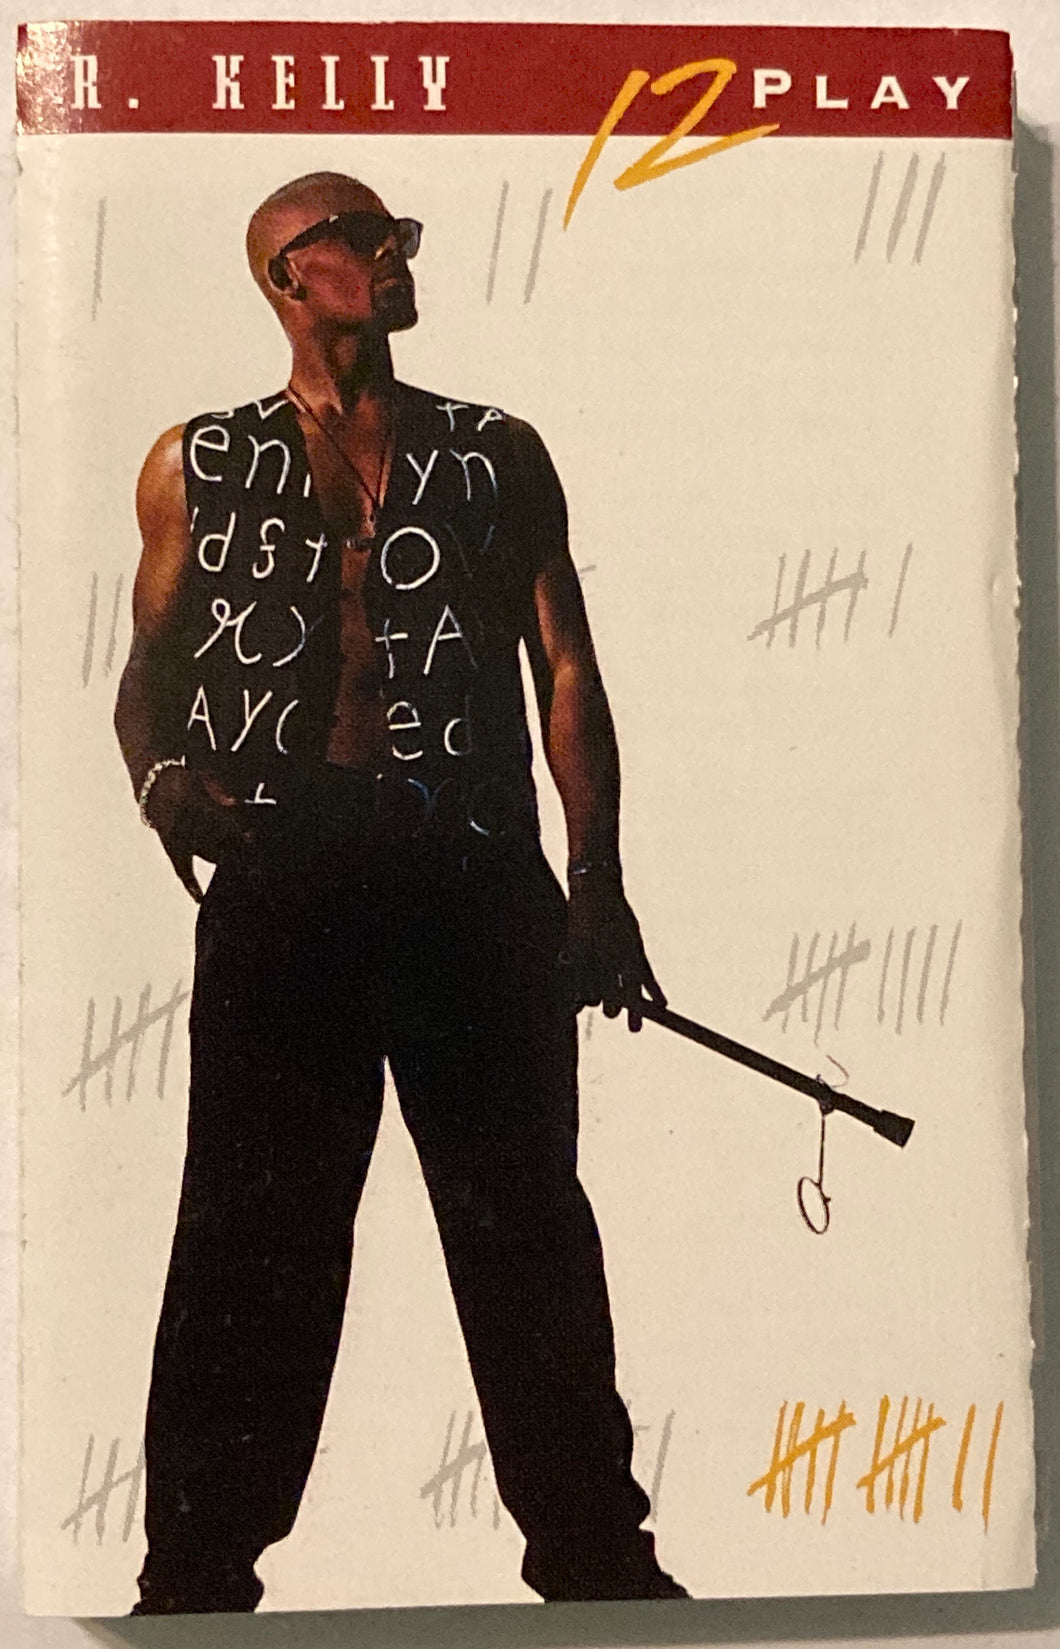 R. Kelly - 12 Play Cassette VG+